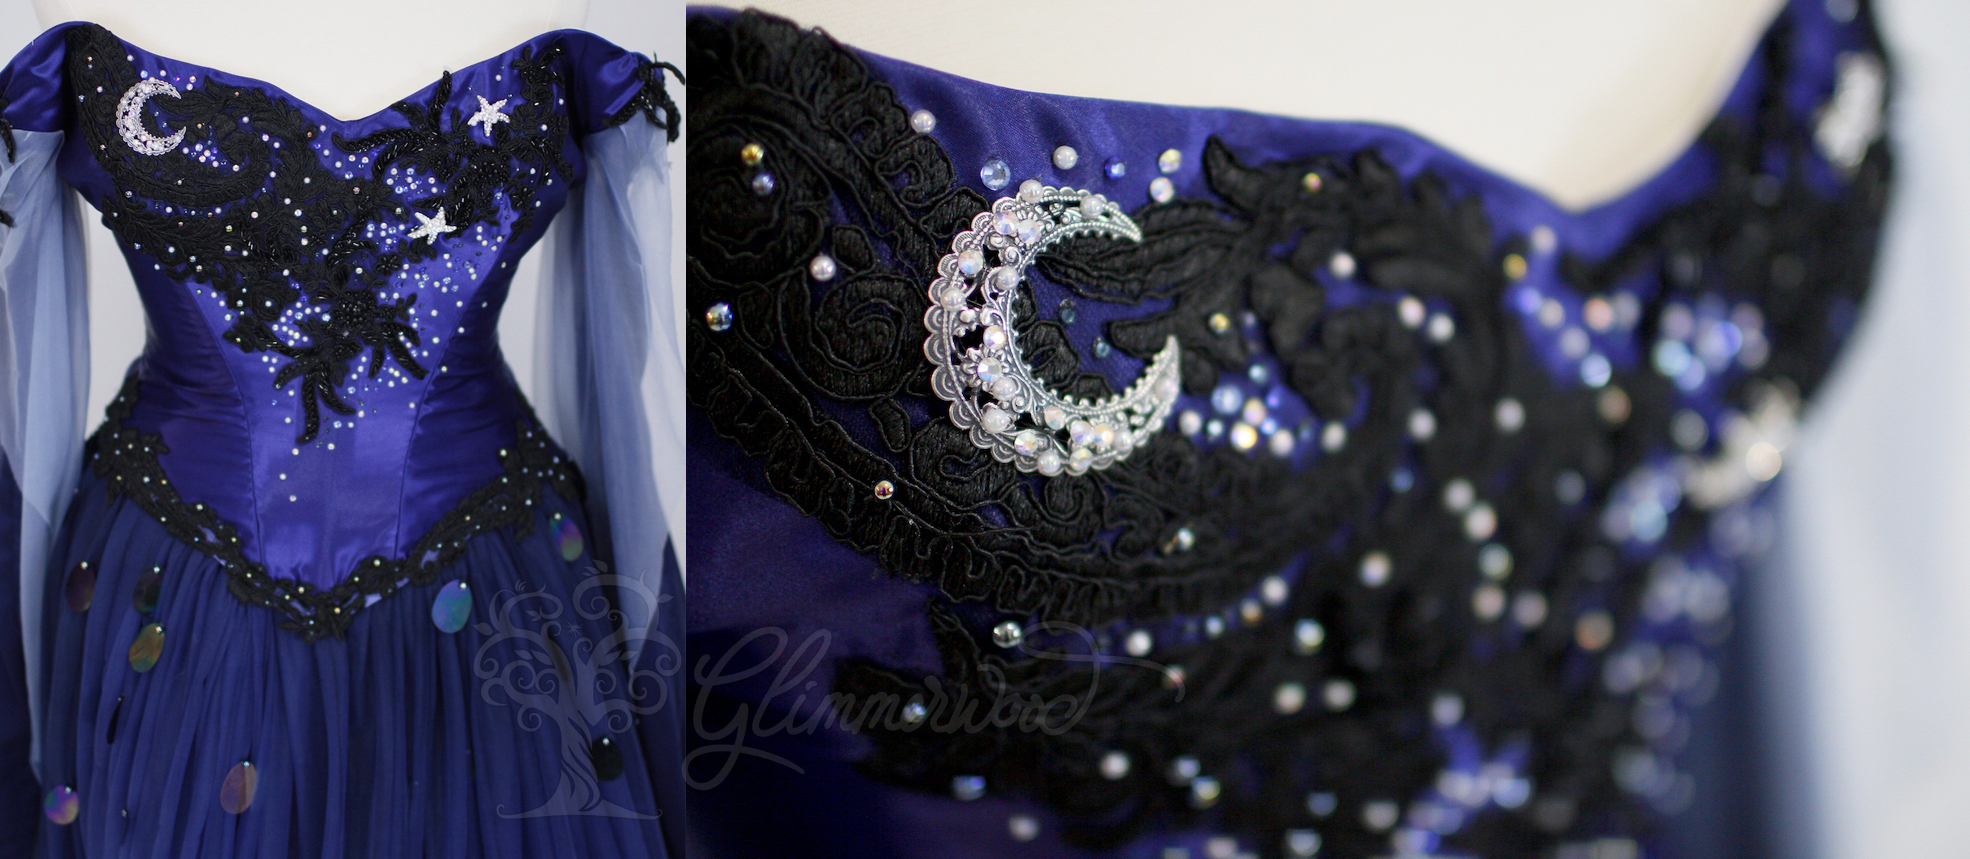 Lunaria Moon Mermaid Details